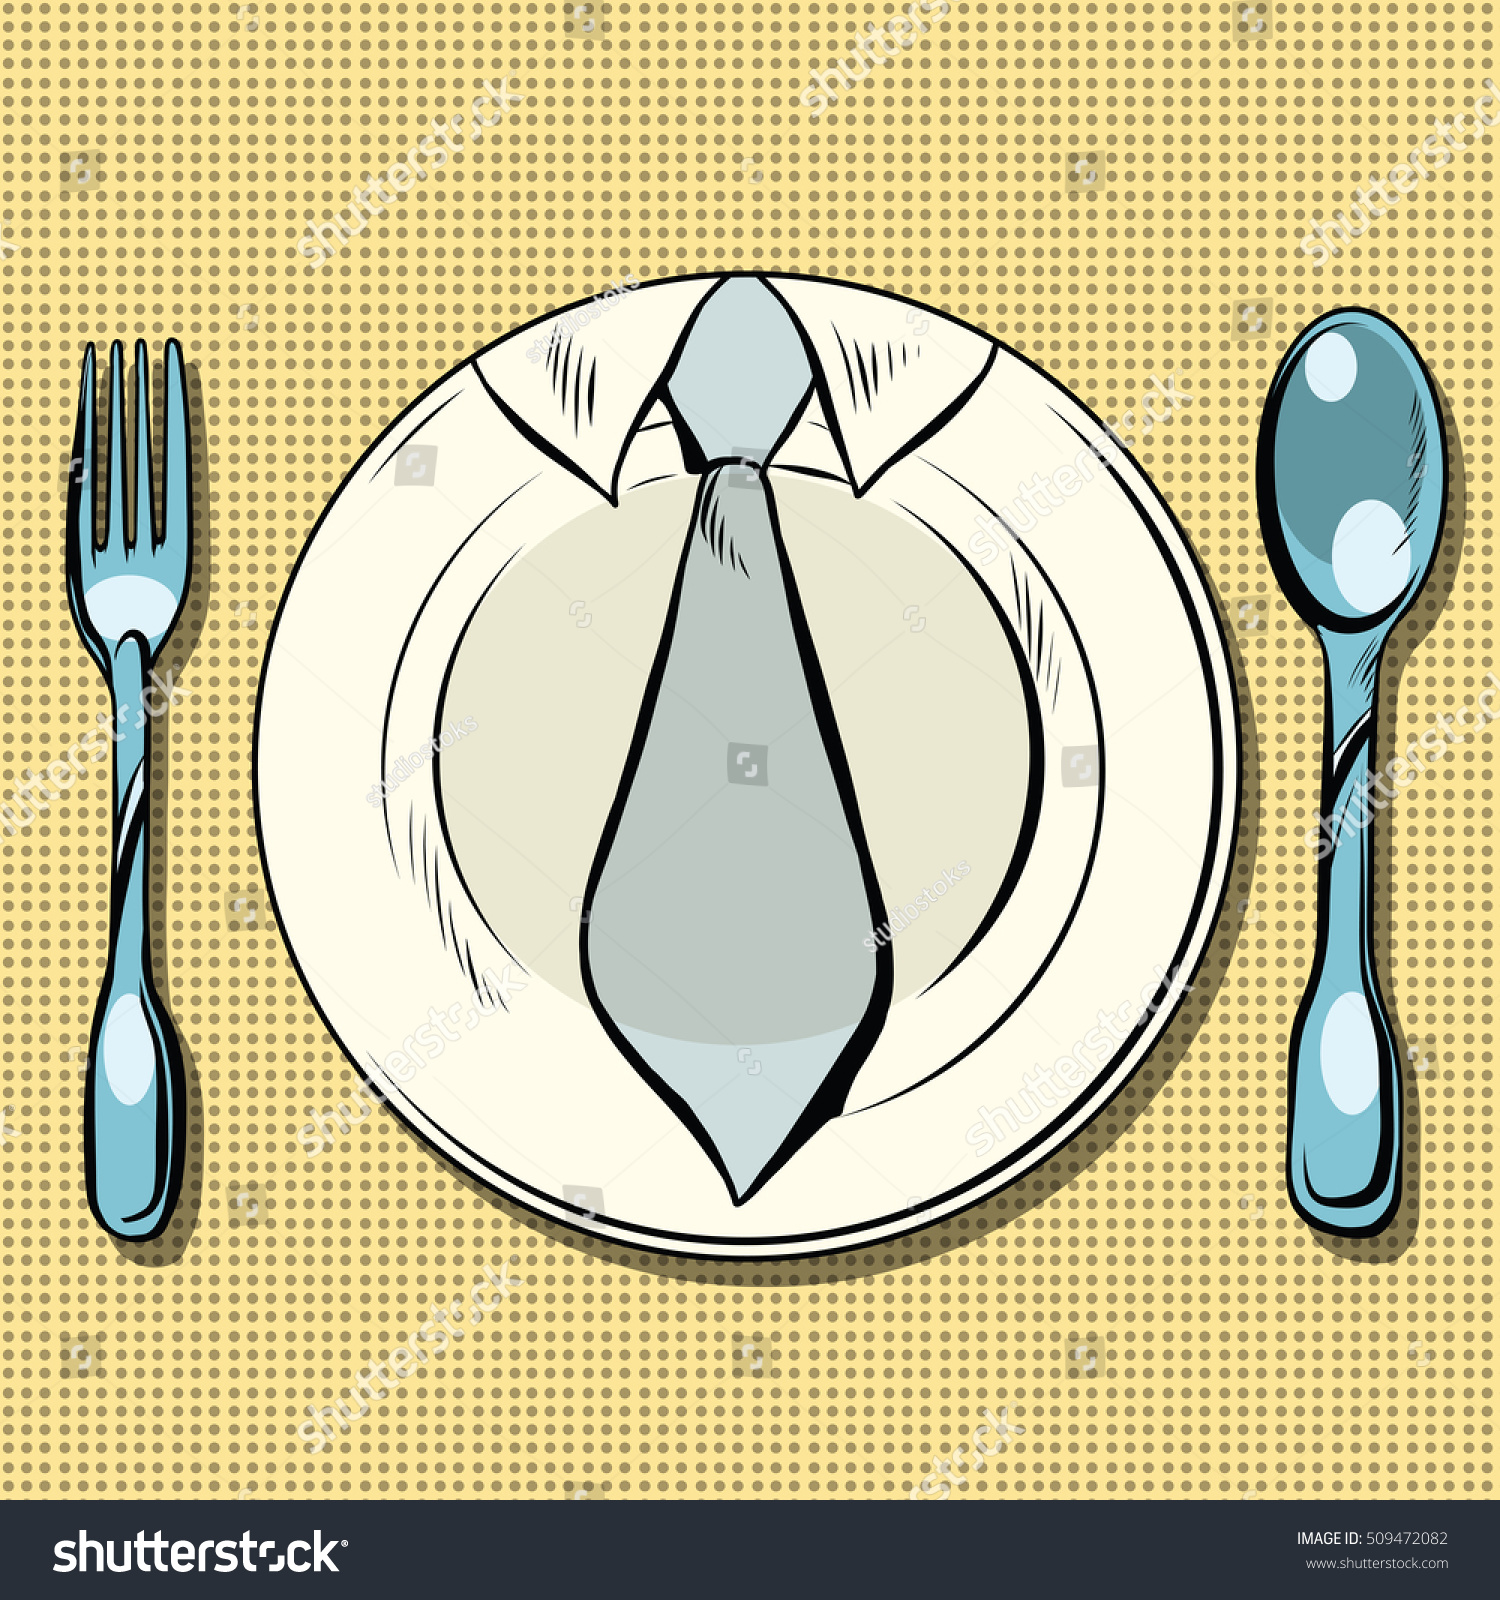 Business Lunch Dish Fork Spoon Pop Stock Vector (Royalty Free ...